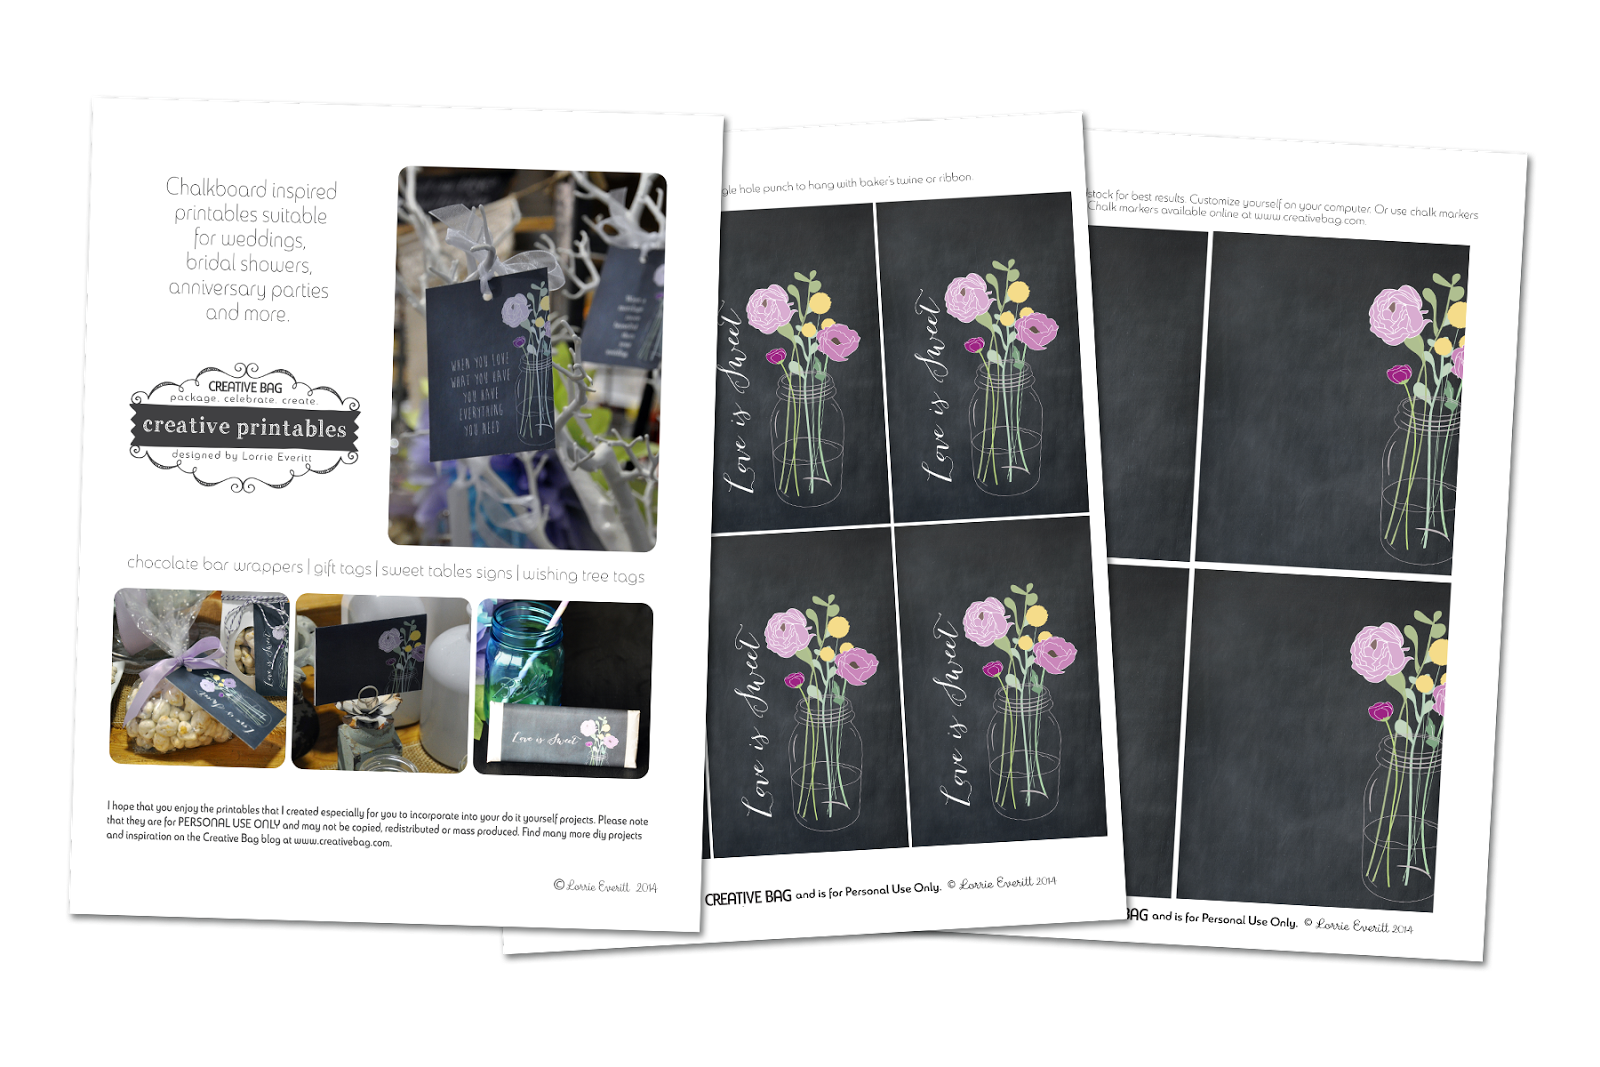 free download for chalkboard inspired printables from Creative Bag | creativebag.com